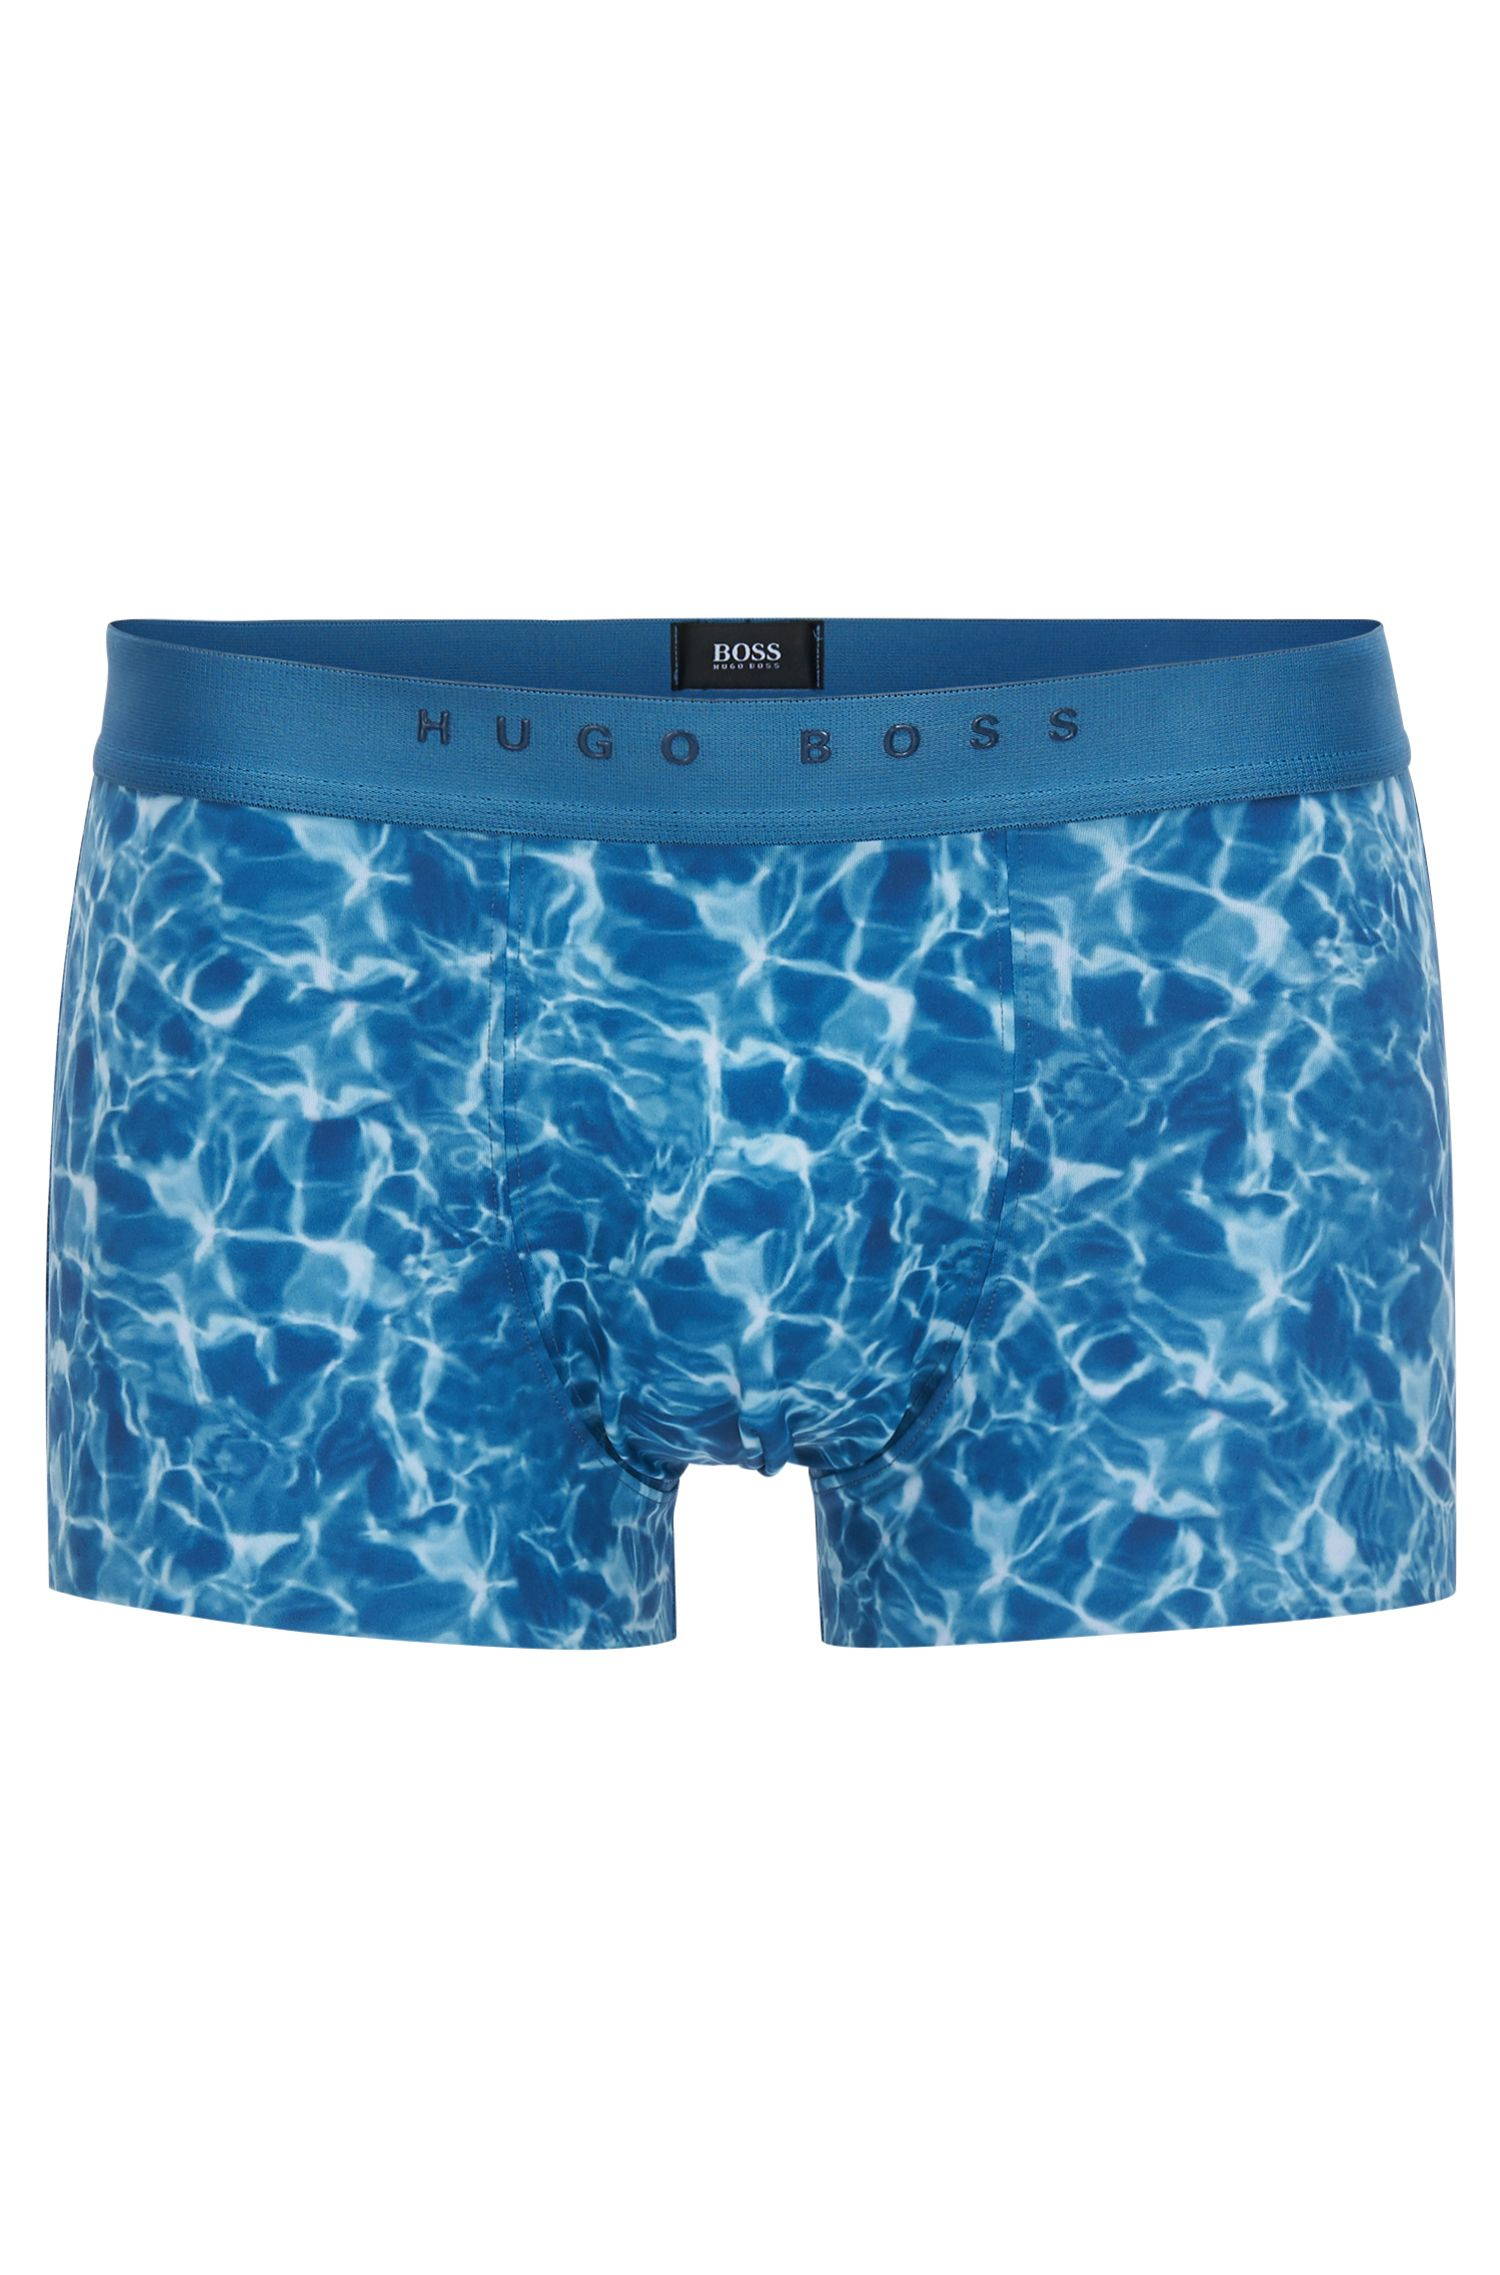 Pool-Print Trunk | Trunk Photoprint